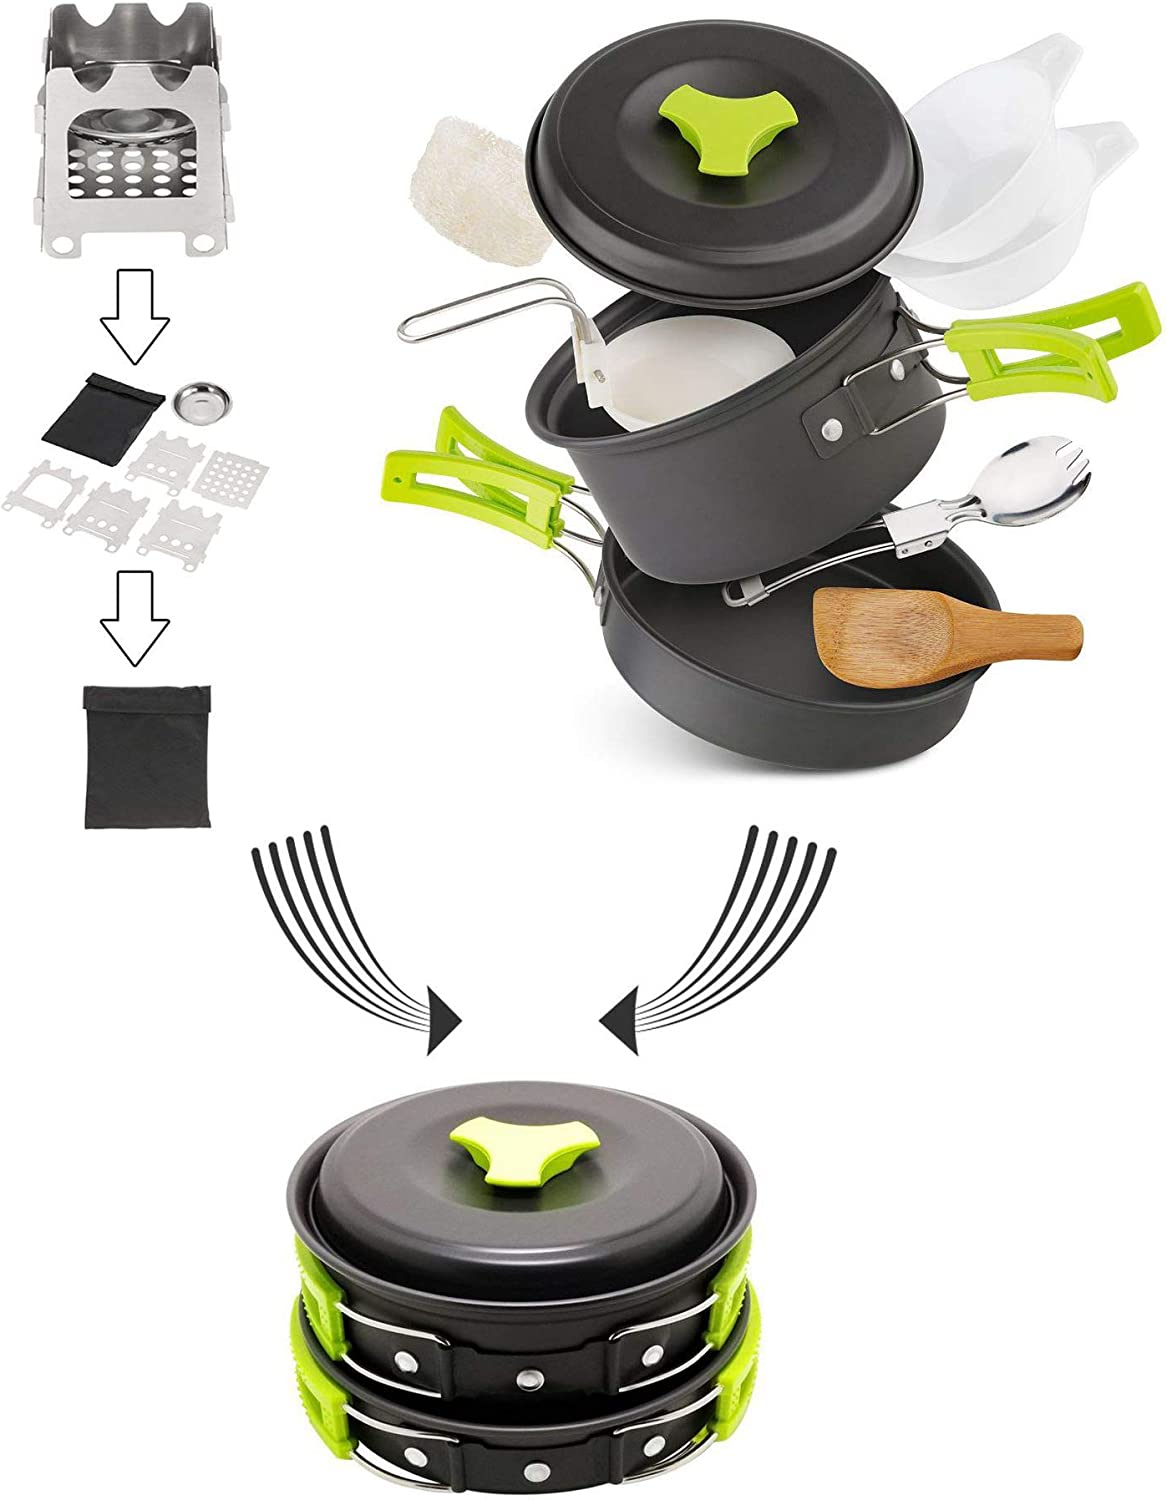 ZMEETY Camping Ustensiles De Camping Camping en Plein Air Set De Camping en Plein Air Ensemble pour Casserole Et Poêle 1-2 Personnes Wild BBQ Grill Green